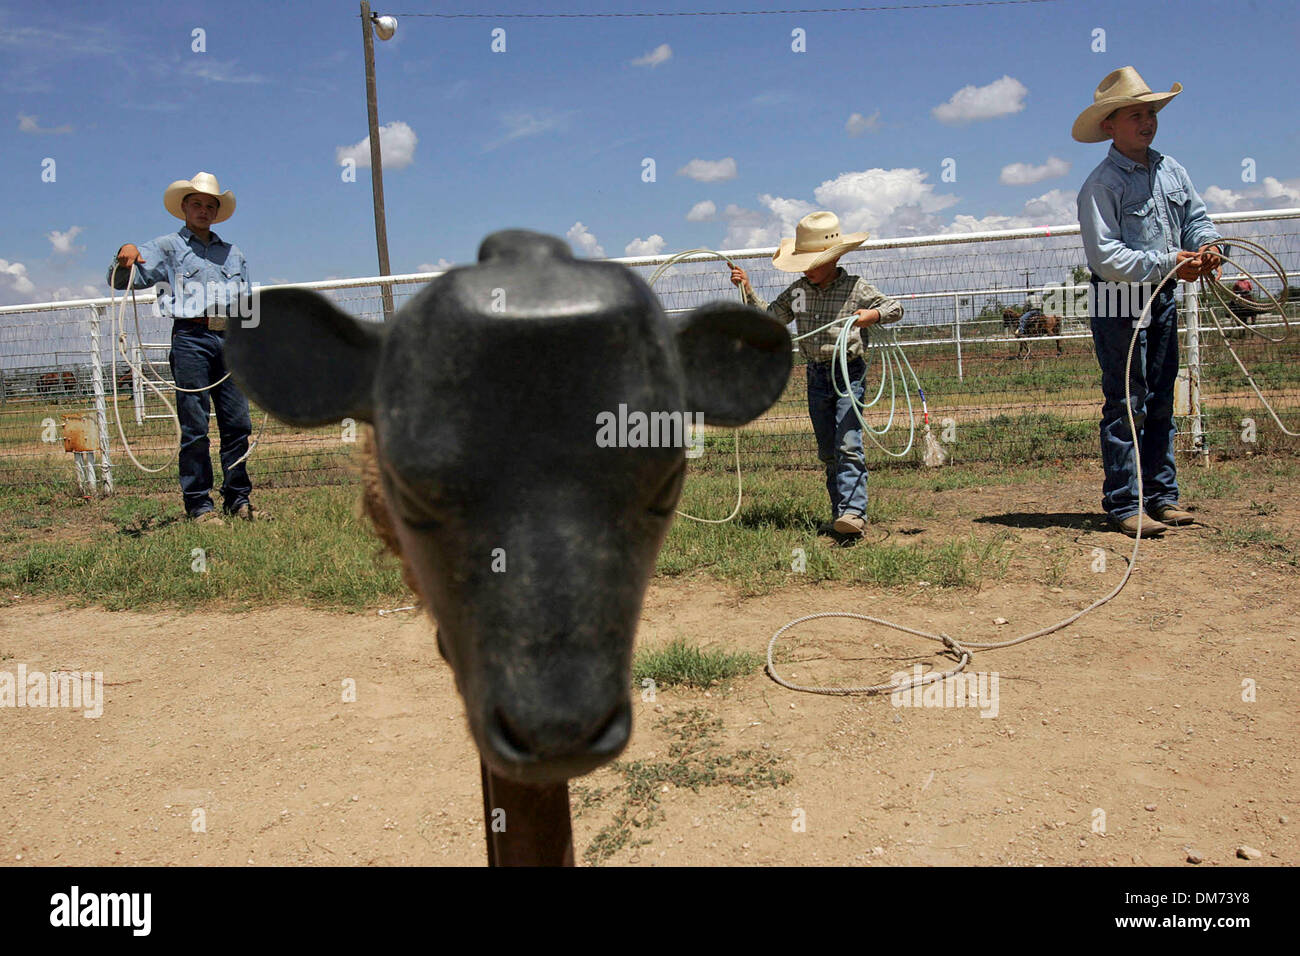 Aug 06, 2005; San Angelo, TX, USA; Clayton Turner, 14, of Henly, from left, Franklin Buchholz, 7, and Robert Buchholz, 12, both of El Dorado, practice roping at World Championship Goat Roping in San Angelo, TX, on Saturday, August 6, 2005. Turner competed in the morning's 14-and-under division. Mandatory Credit: Photo by Lisa Krantz/San Antonio Express-News/ZUMA Press. (©) Copyrigh - Stock Image